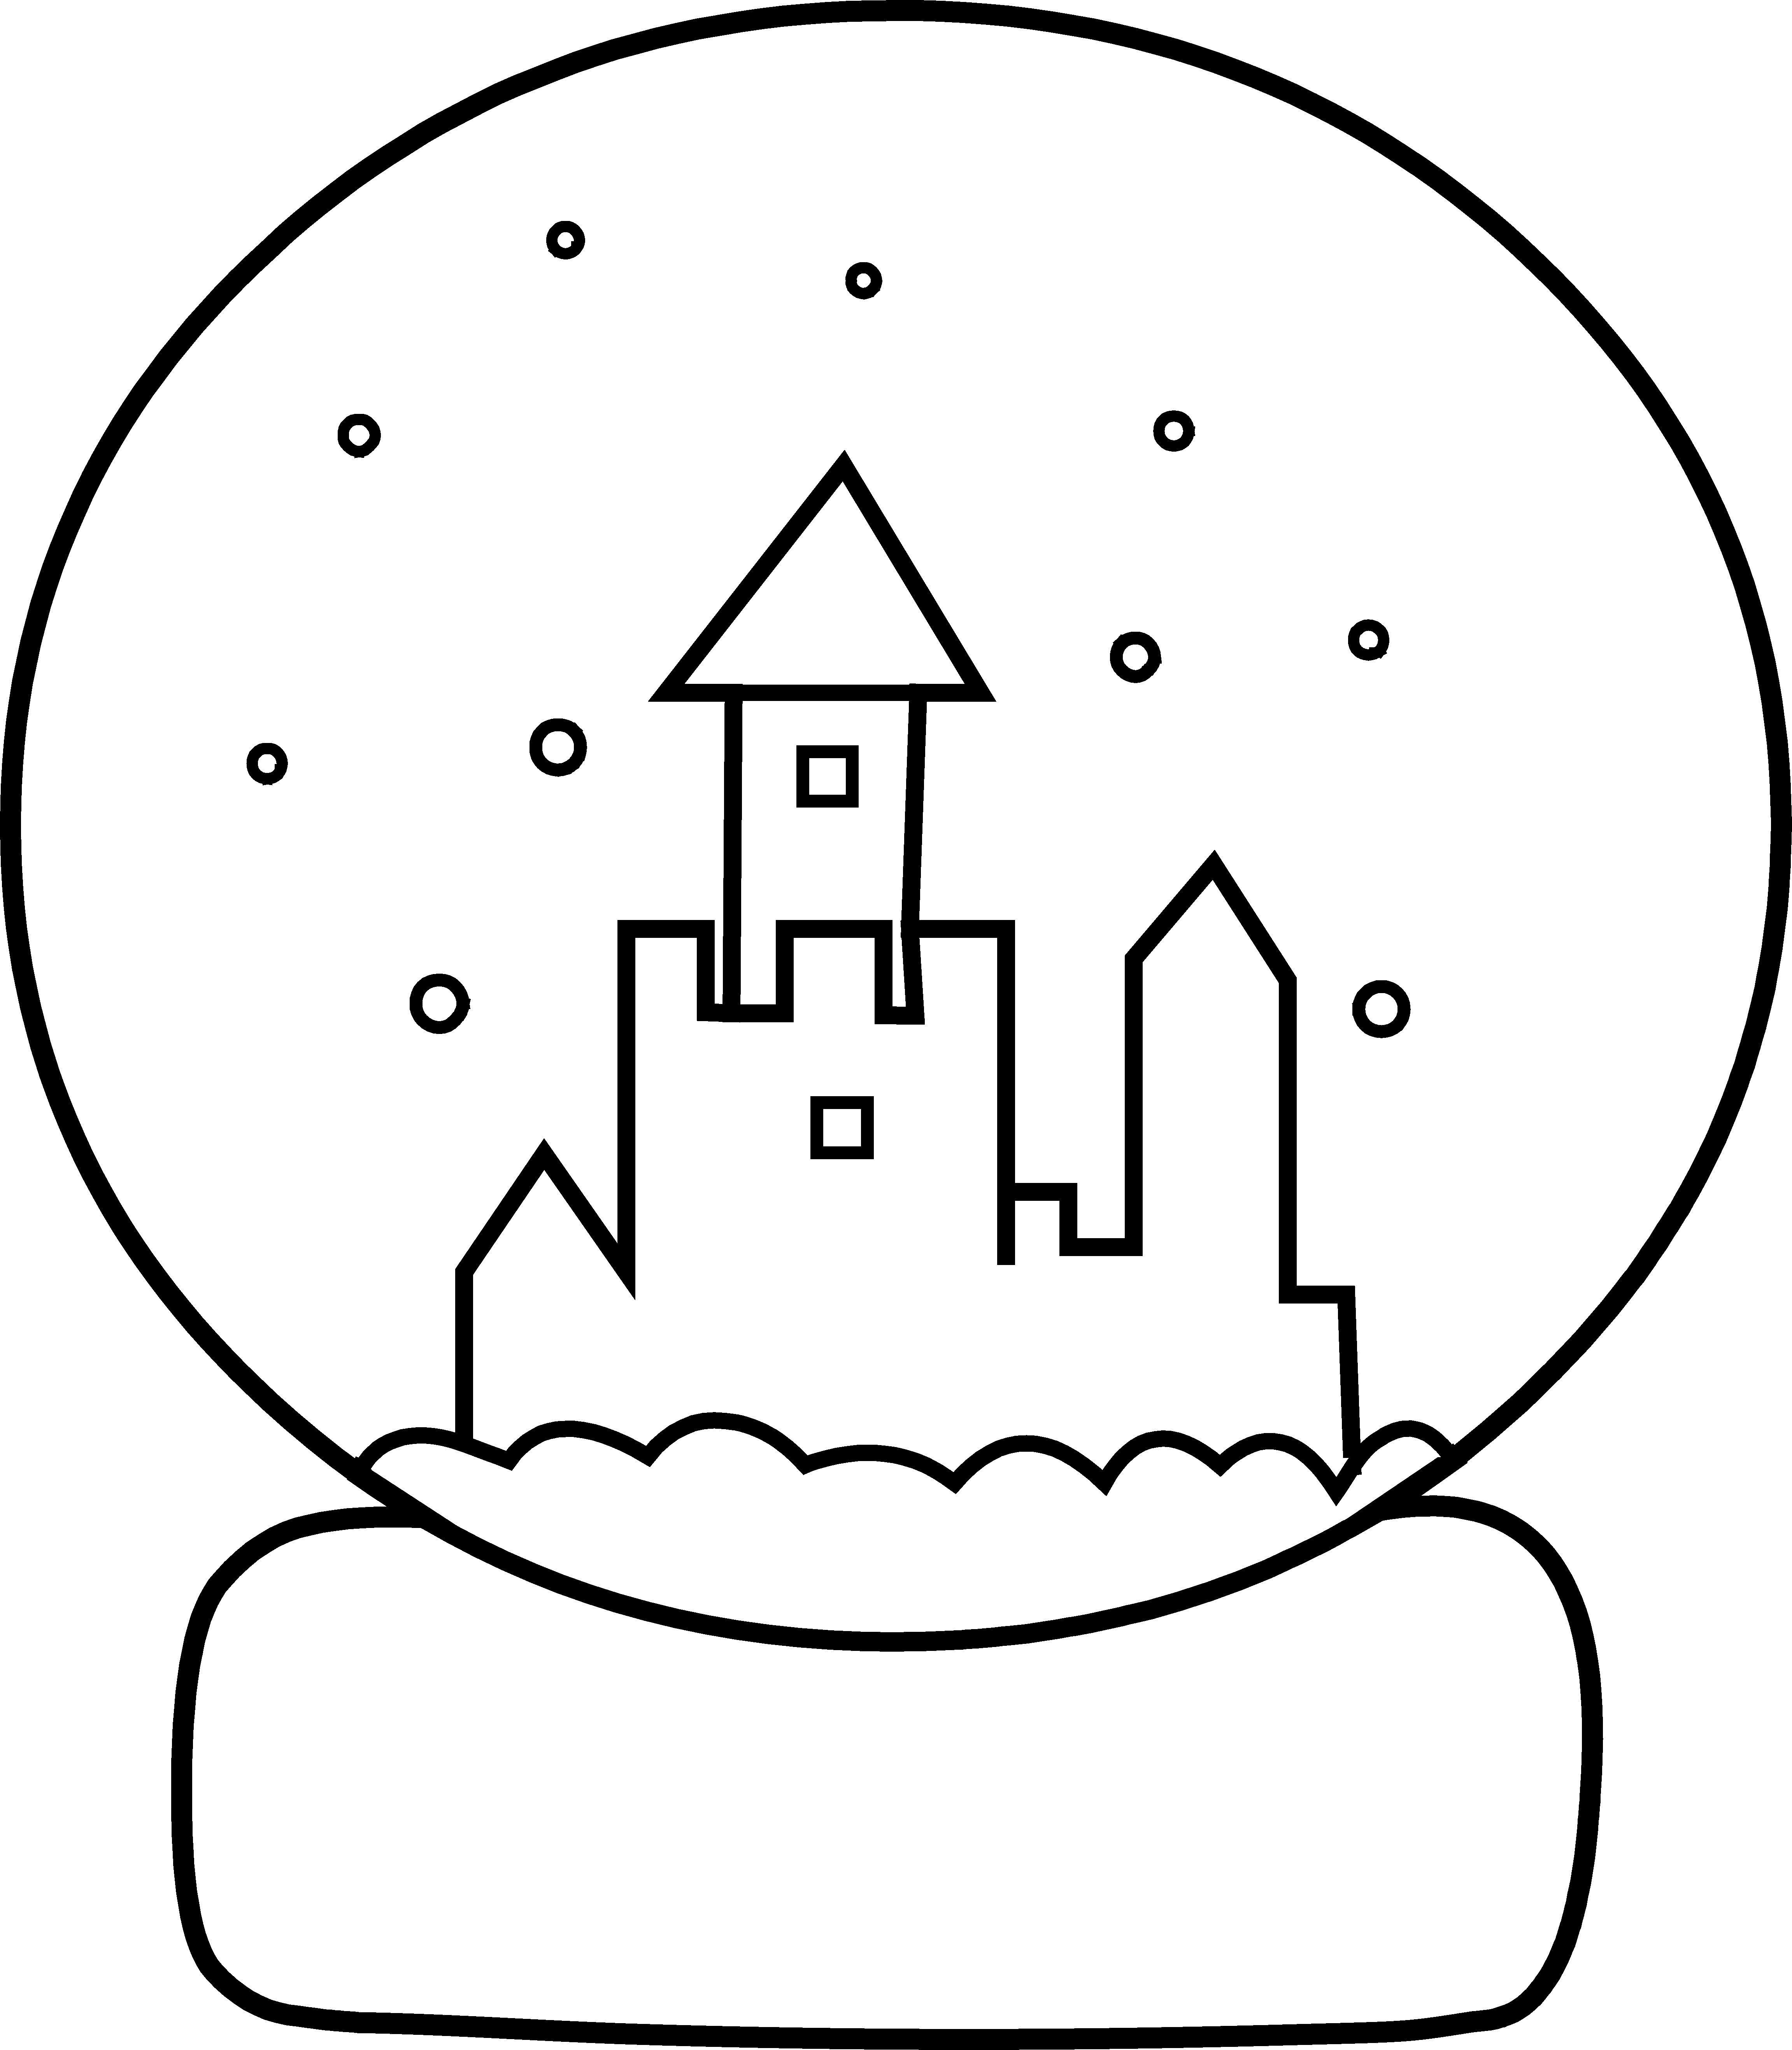 Clipart sun and snow banner transparent Cute Snow Globe Coloring Page - Free Clip Art banner transparent